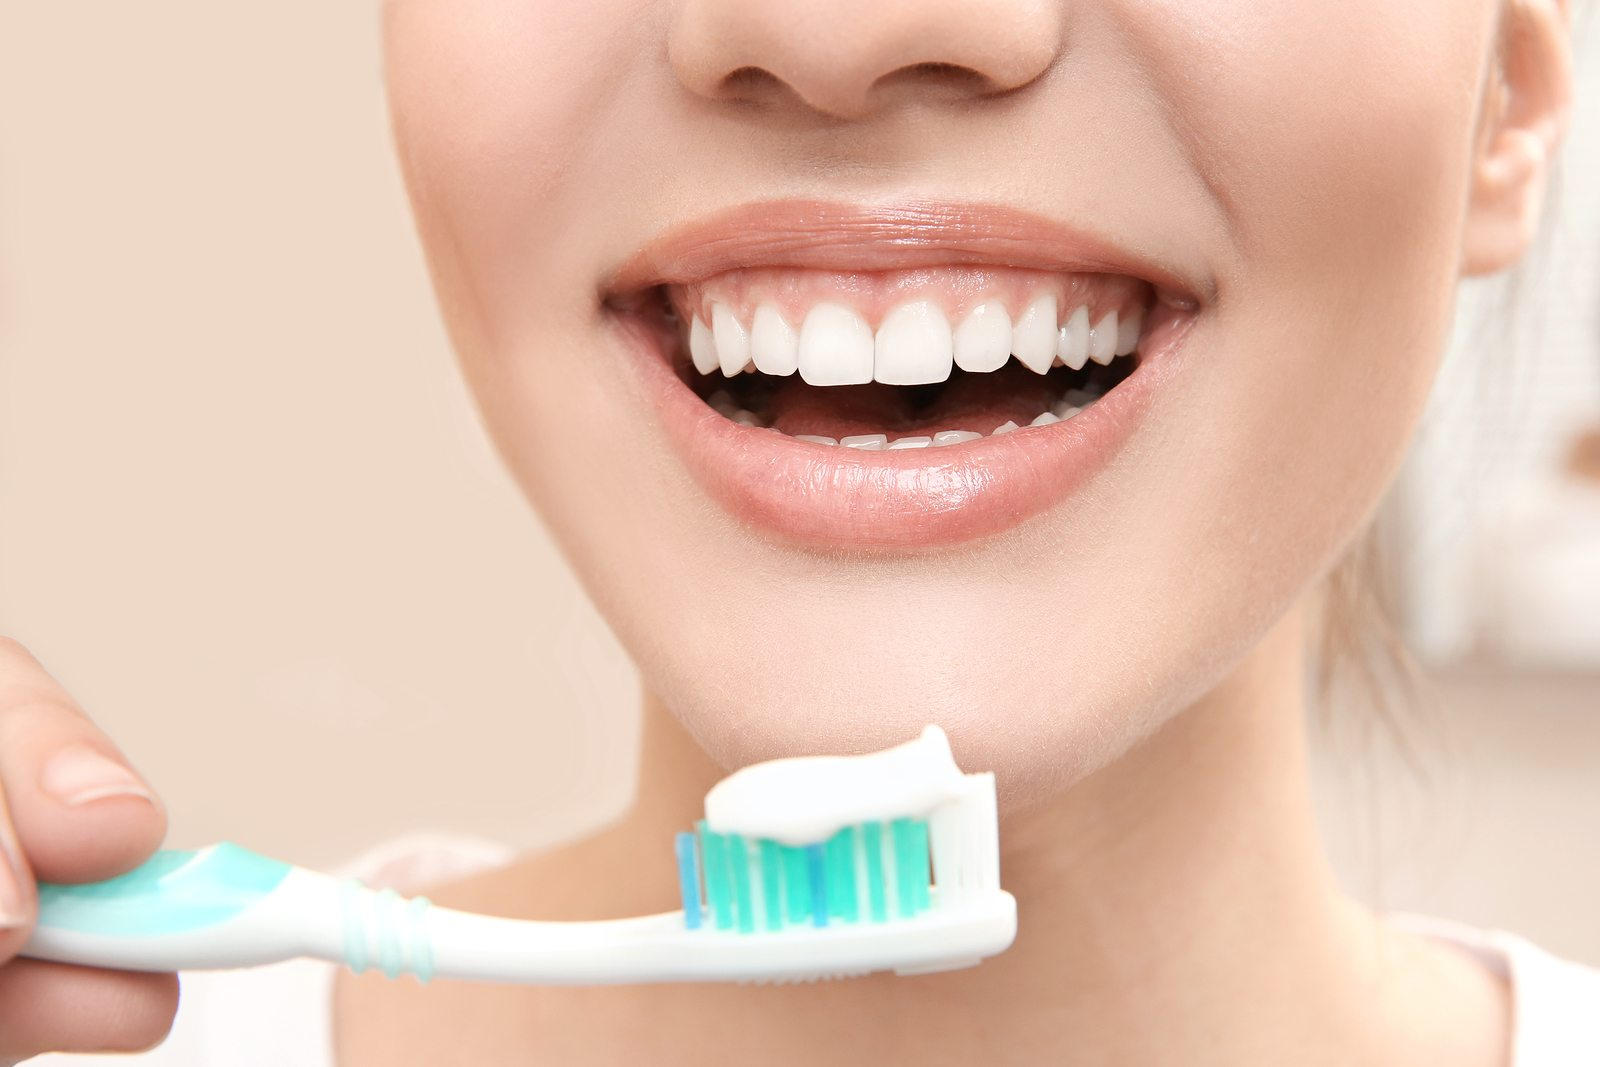 Brushing teeth 3 times a day can lower heart failure risk